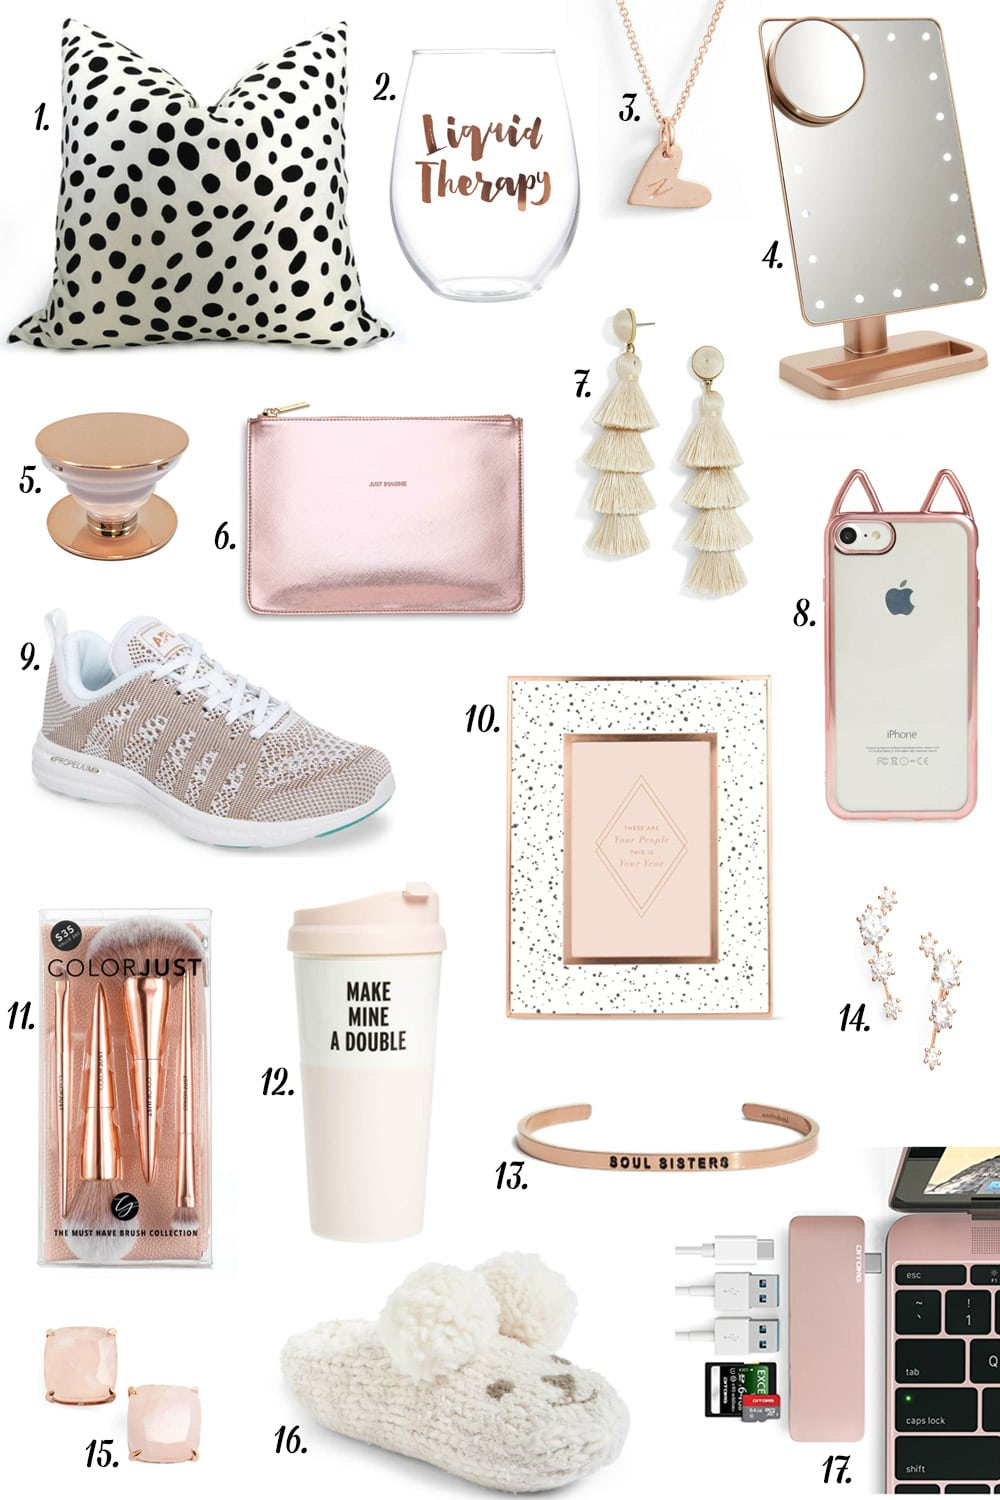 Best gift ideas for your best friend | liquid therapy glass | polka dot pillow | make mine a double kate spade tumbler | kate spade stud earrings | best gifts for teenagers, young adults, women, mom, sister | fashion, beauty and lifestyle blog Mash Elle